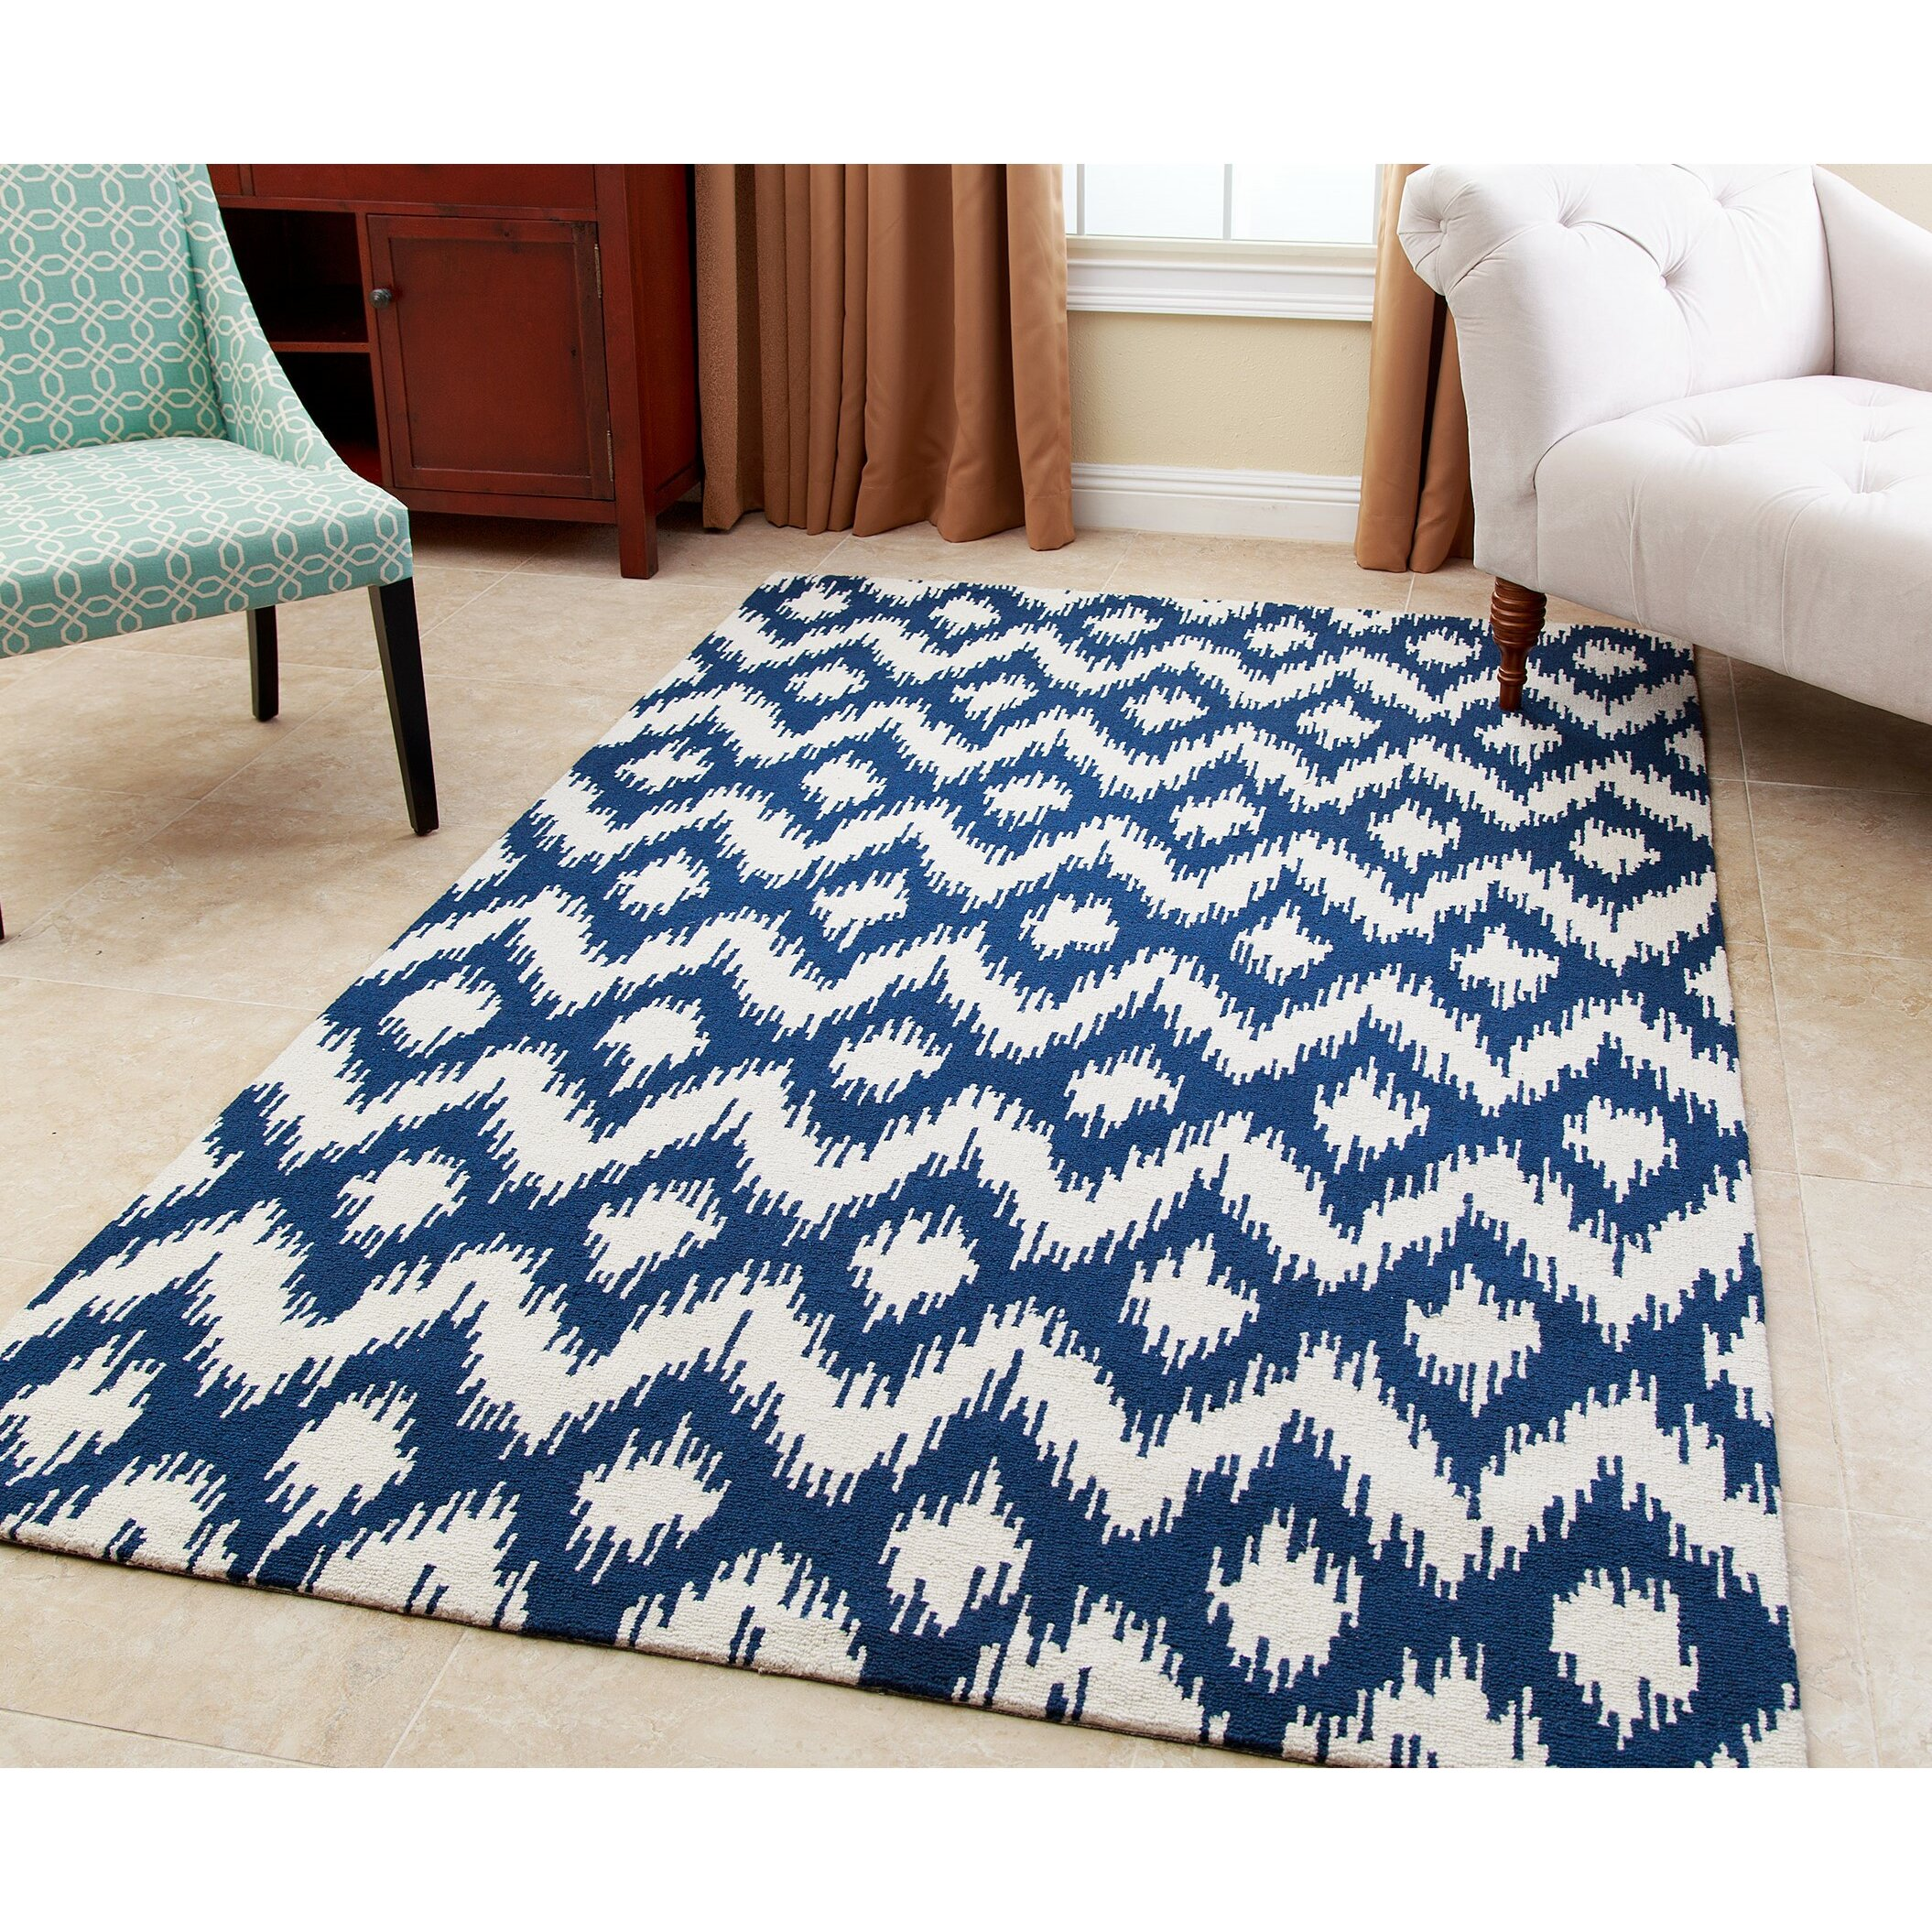 Wonderful Ellie Hand Tufted Royal Blue Area Rug By Abbyson Living